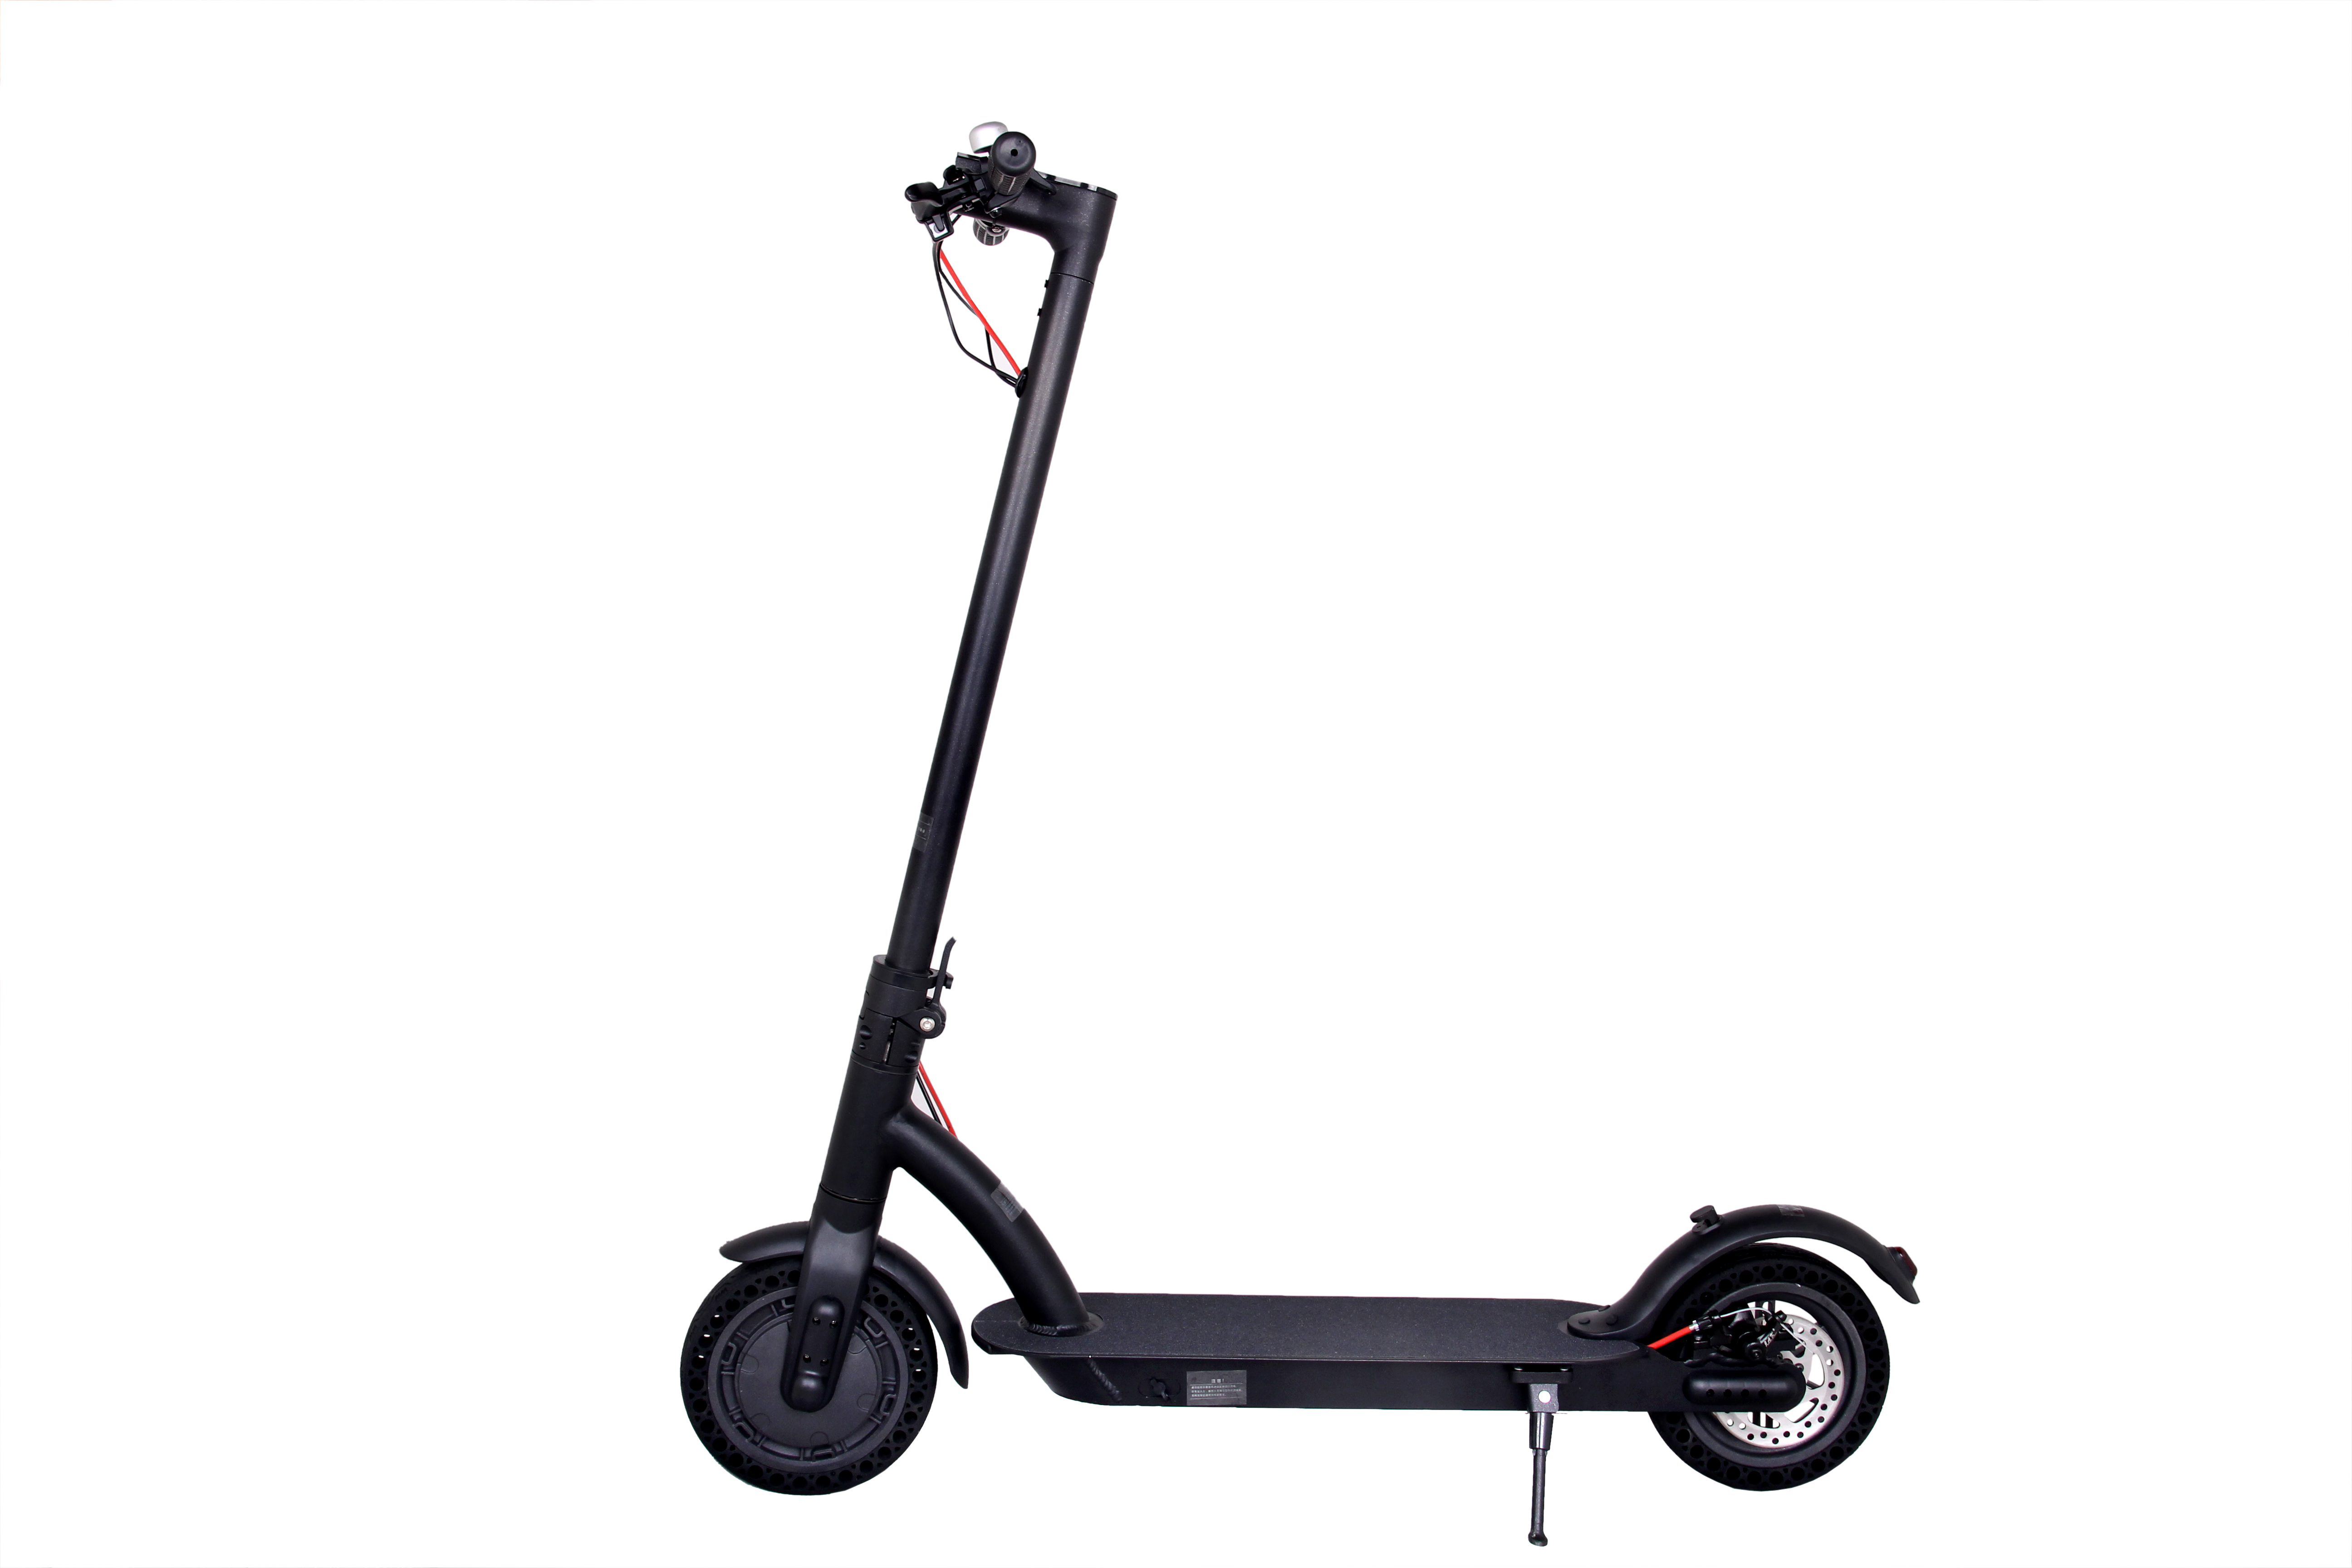 Tire size 8.5inch one year warranty LED highlights Electric scooter 36V 7.8A